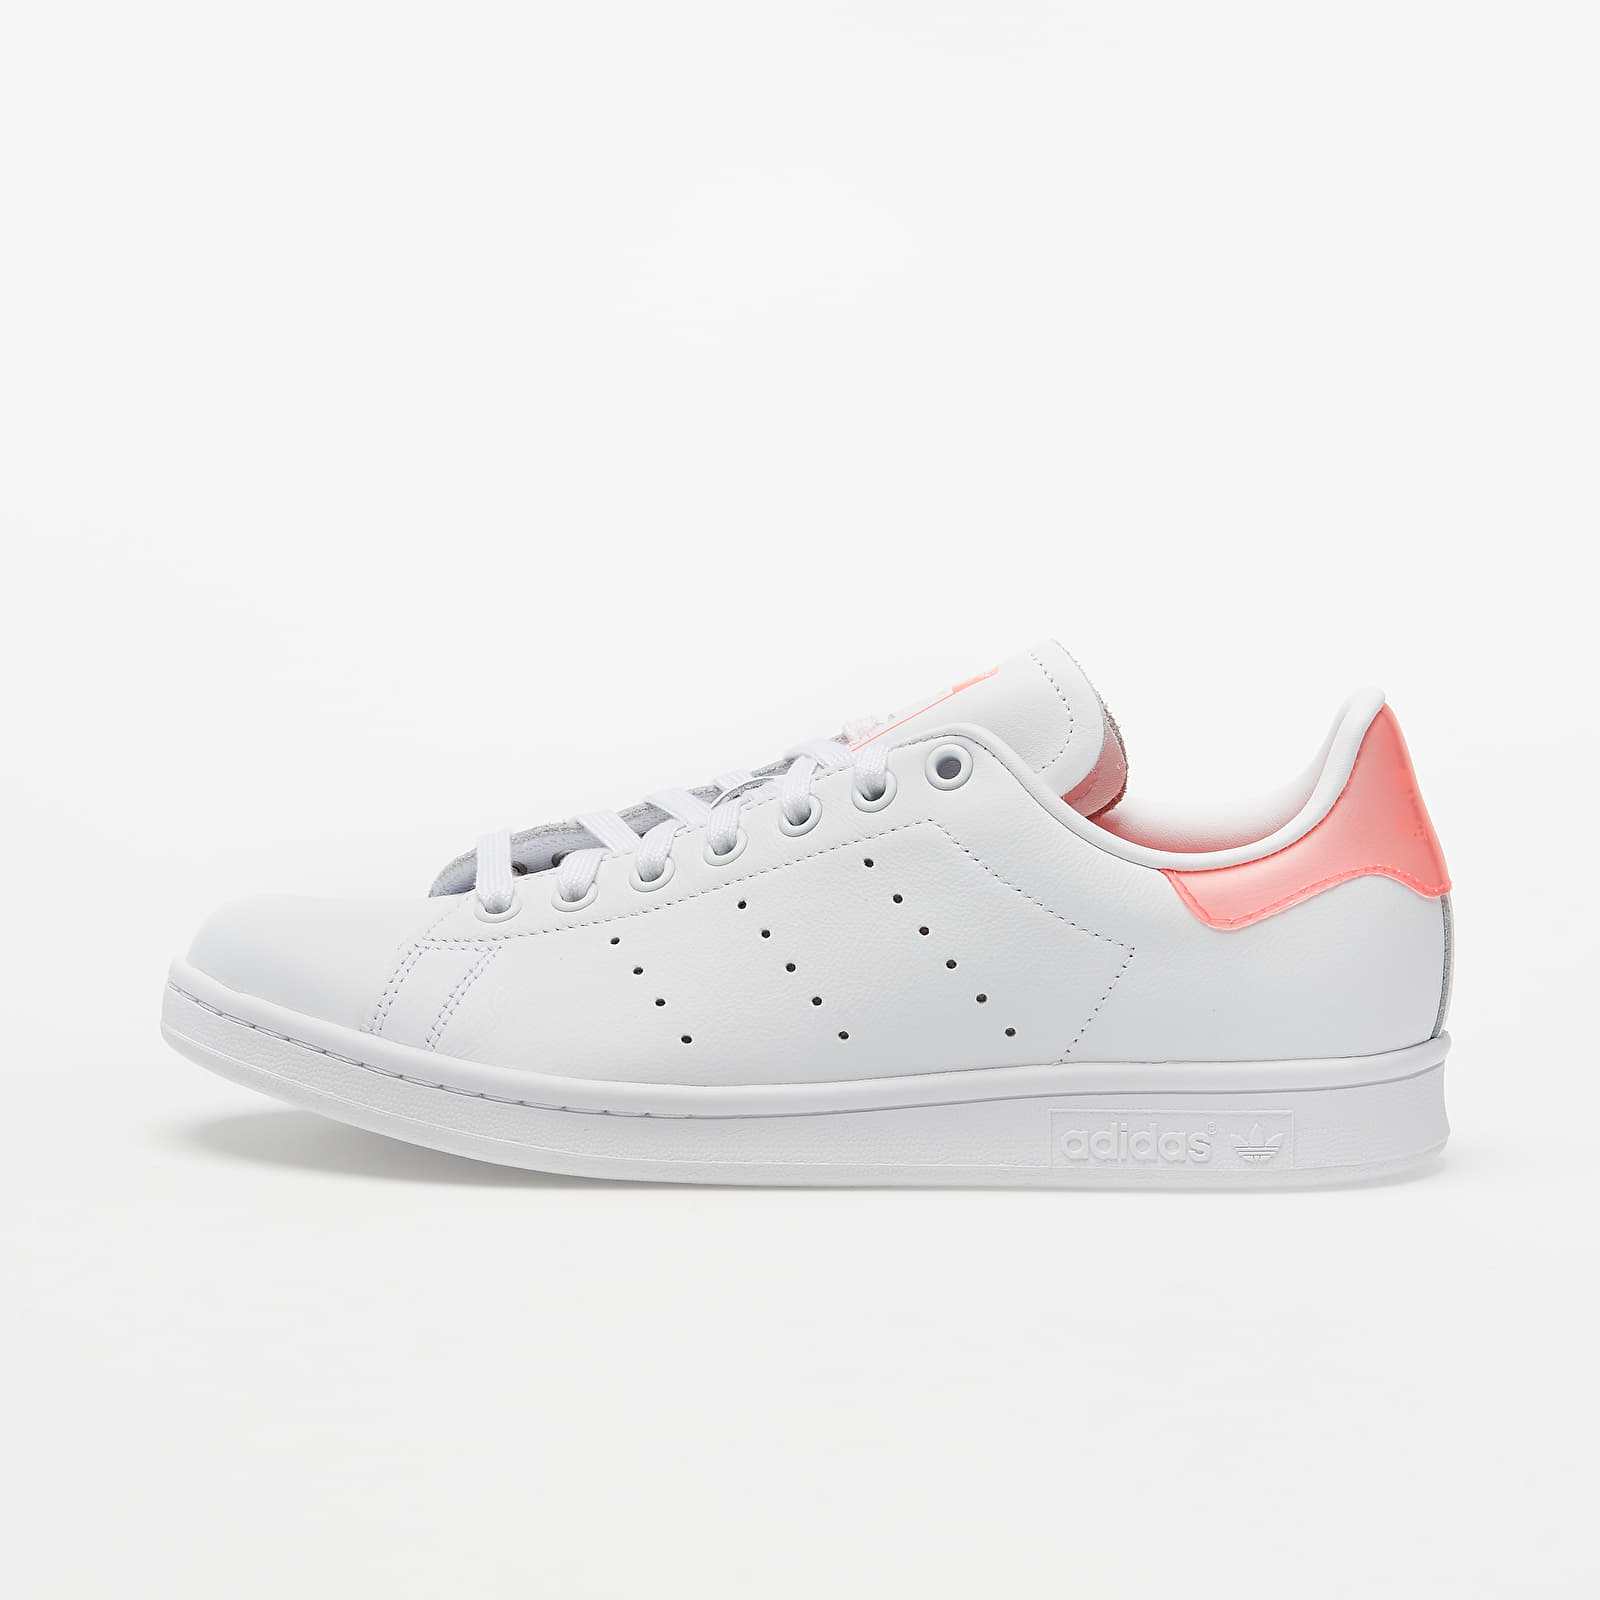 Dámske topánky a tenisky adidas Stan Smith W Ftw White/ Signature Pink/ Ftw White